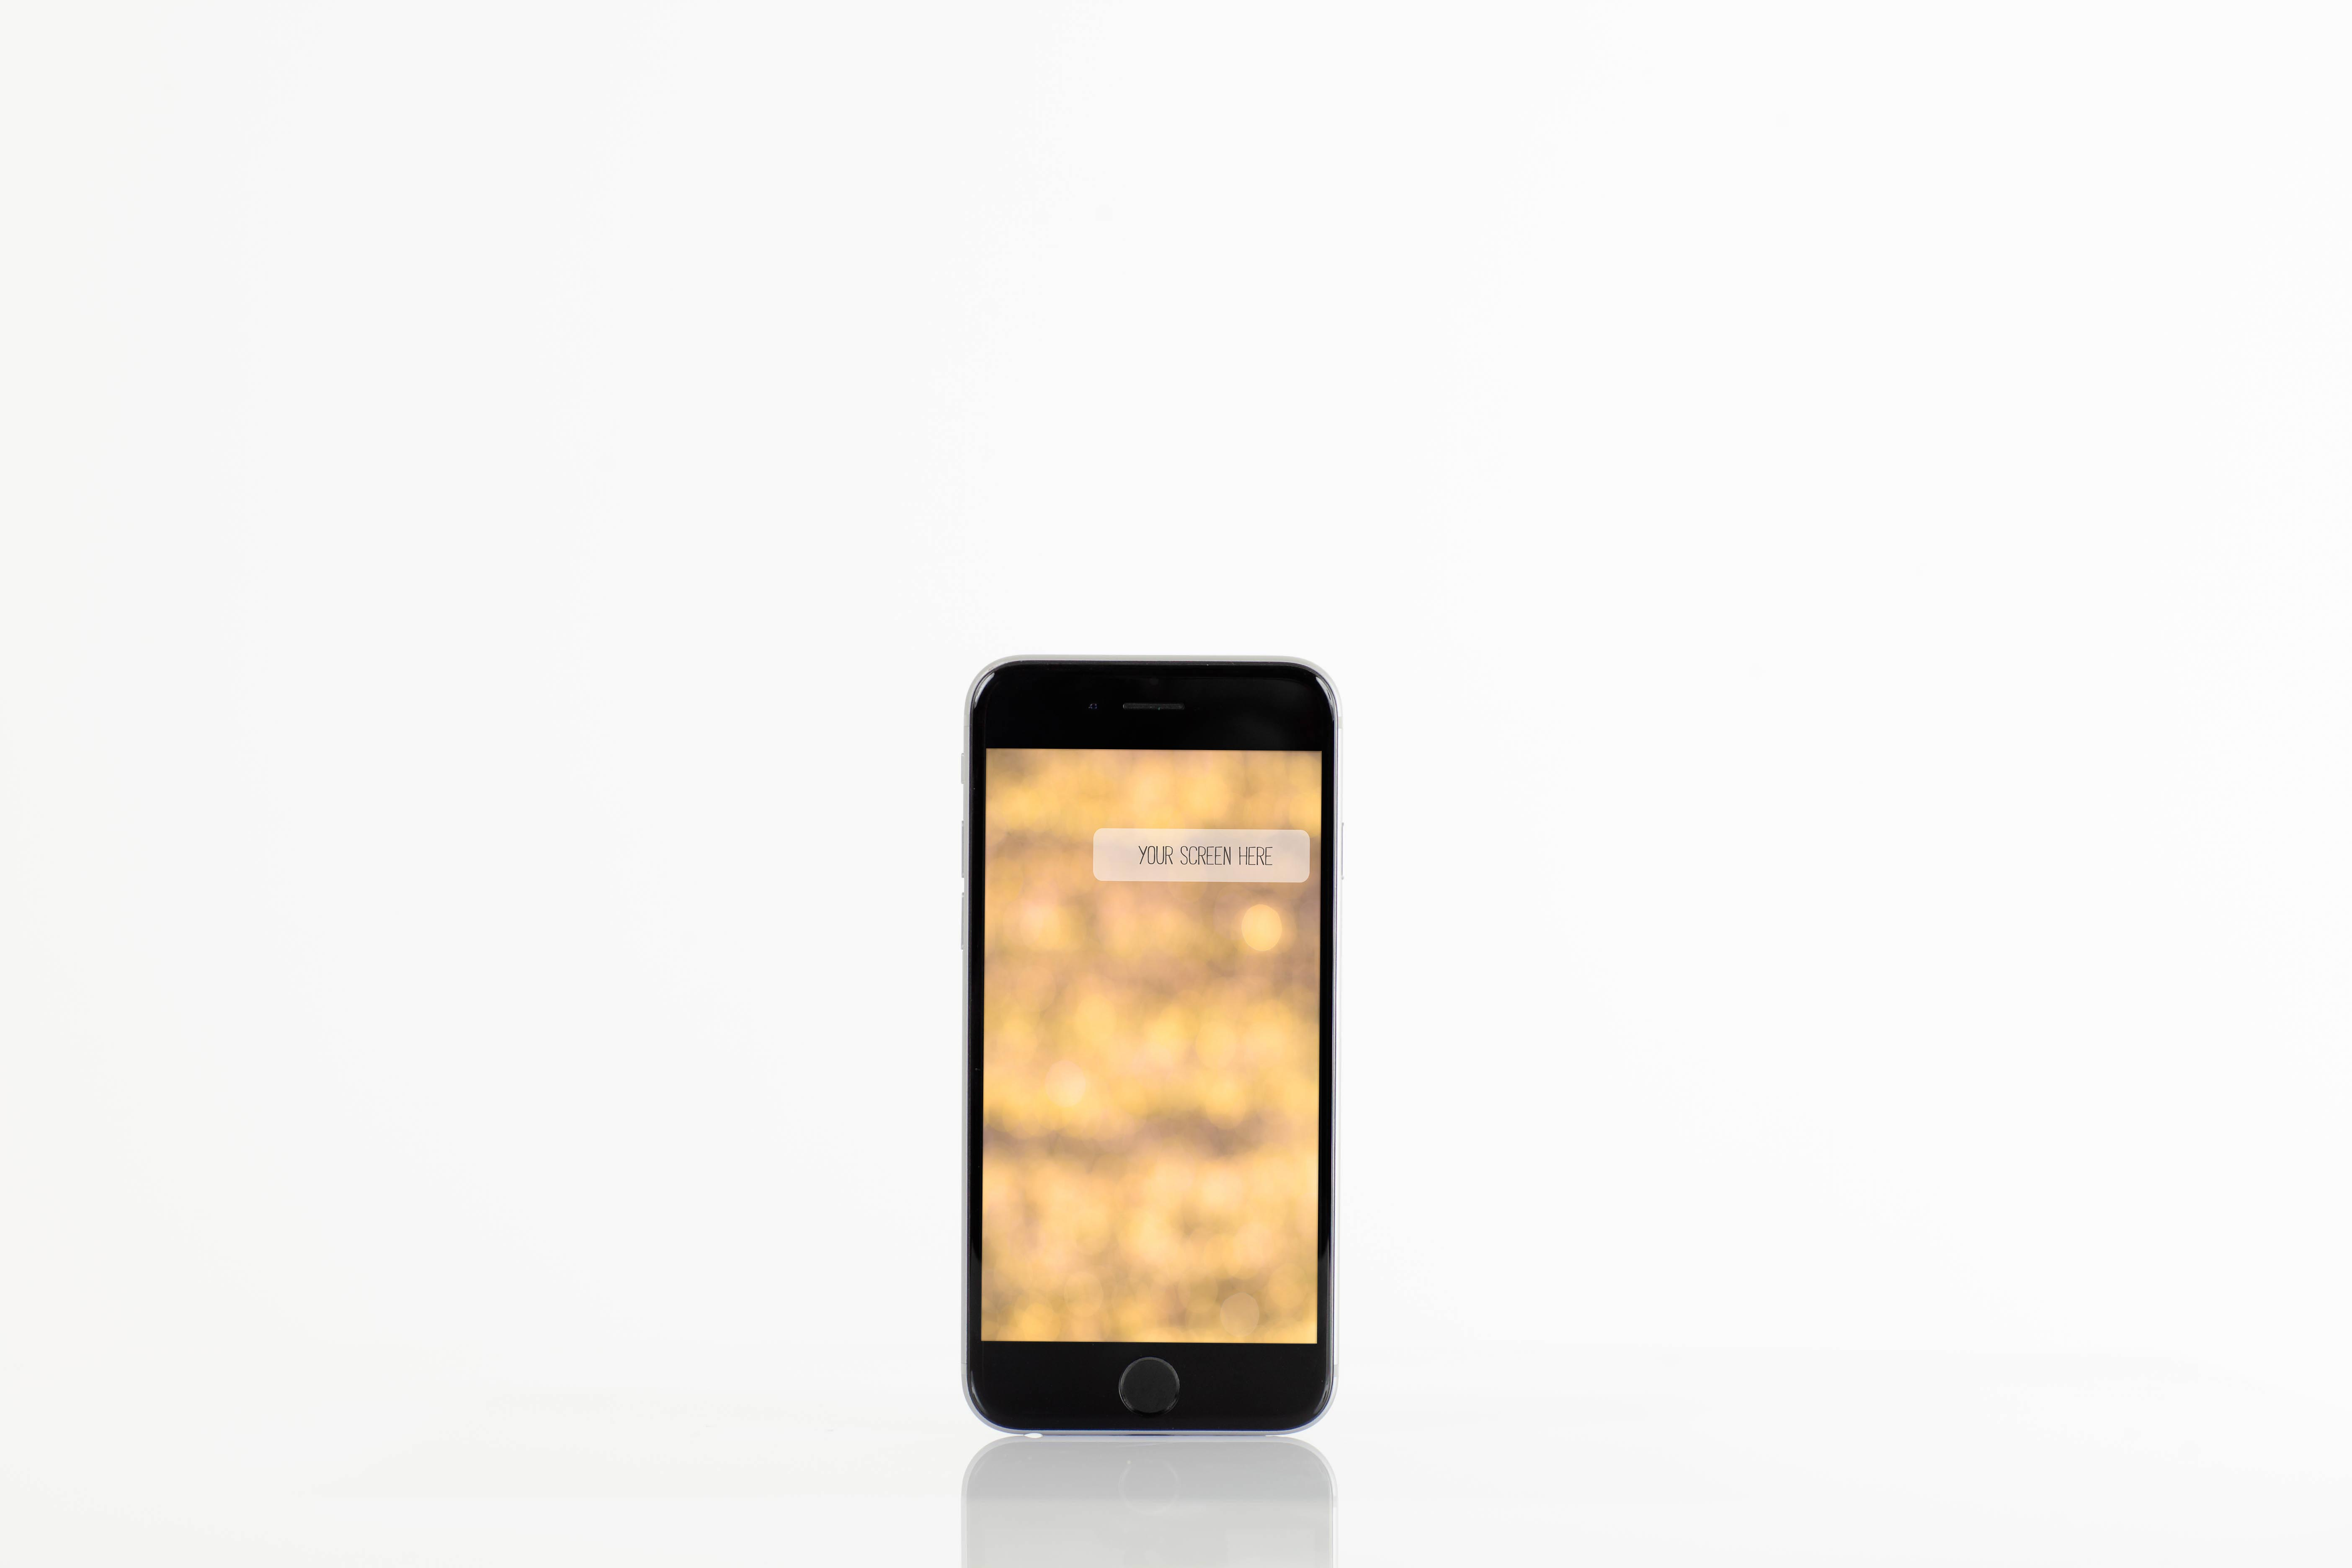 Set from 6 iPhone mockups example image 3